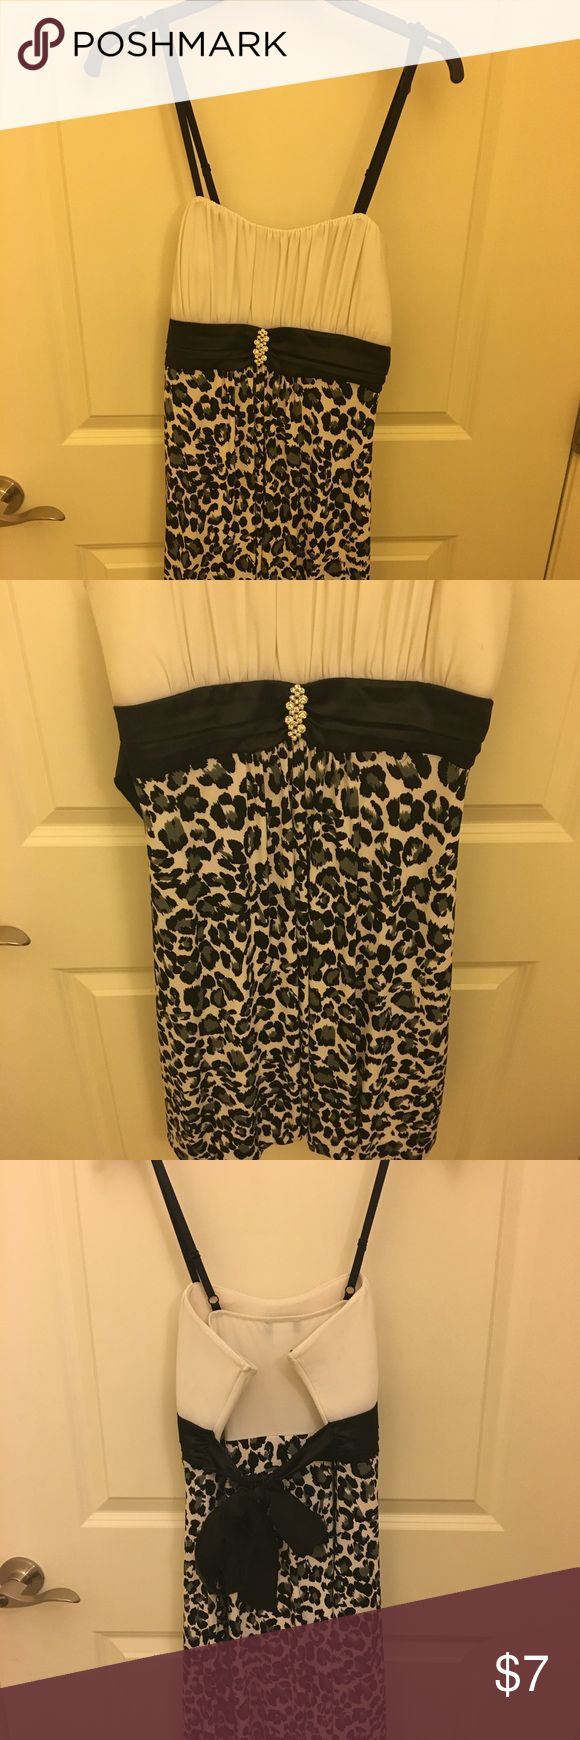 Black and white dress White bust area. Black and white animal print with crystal brooch in the center.  There is slight discoloration in one of the pictures that isn't noticeable and must be from sitting in the closet for 5-6 years. Awesome fun dress! Taboo Dresses